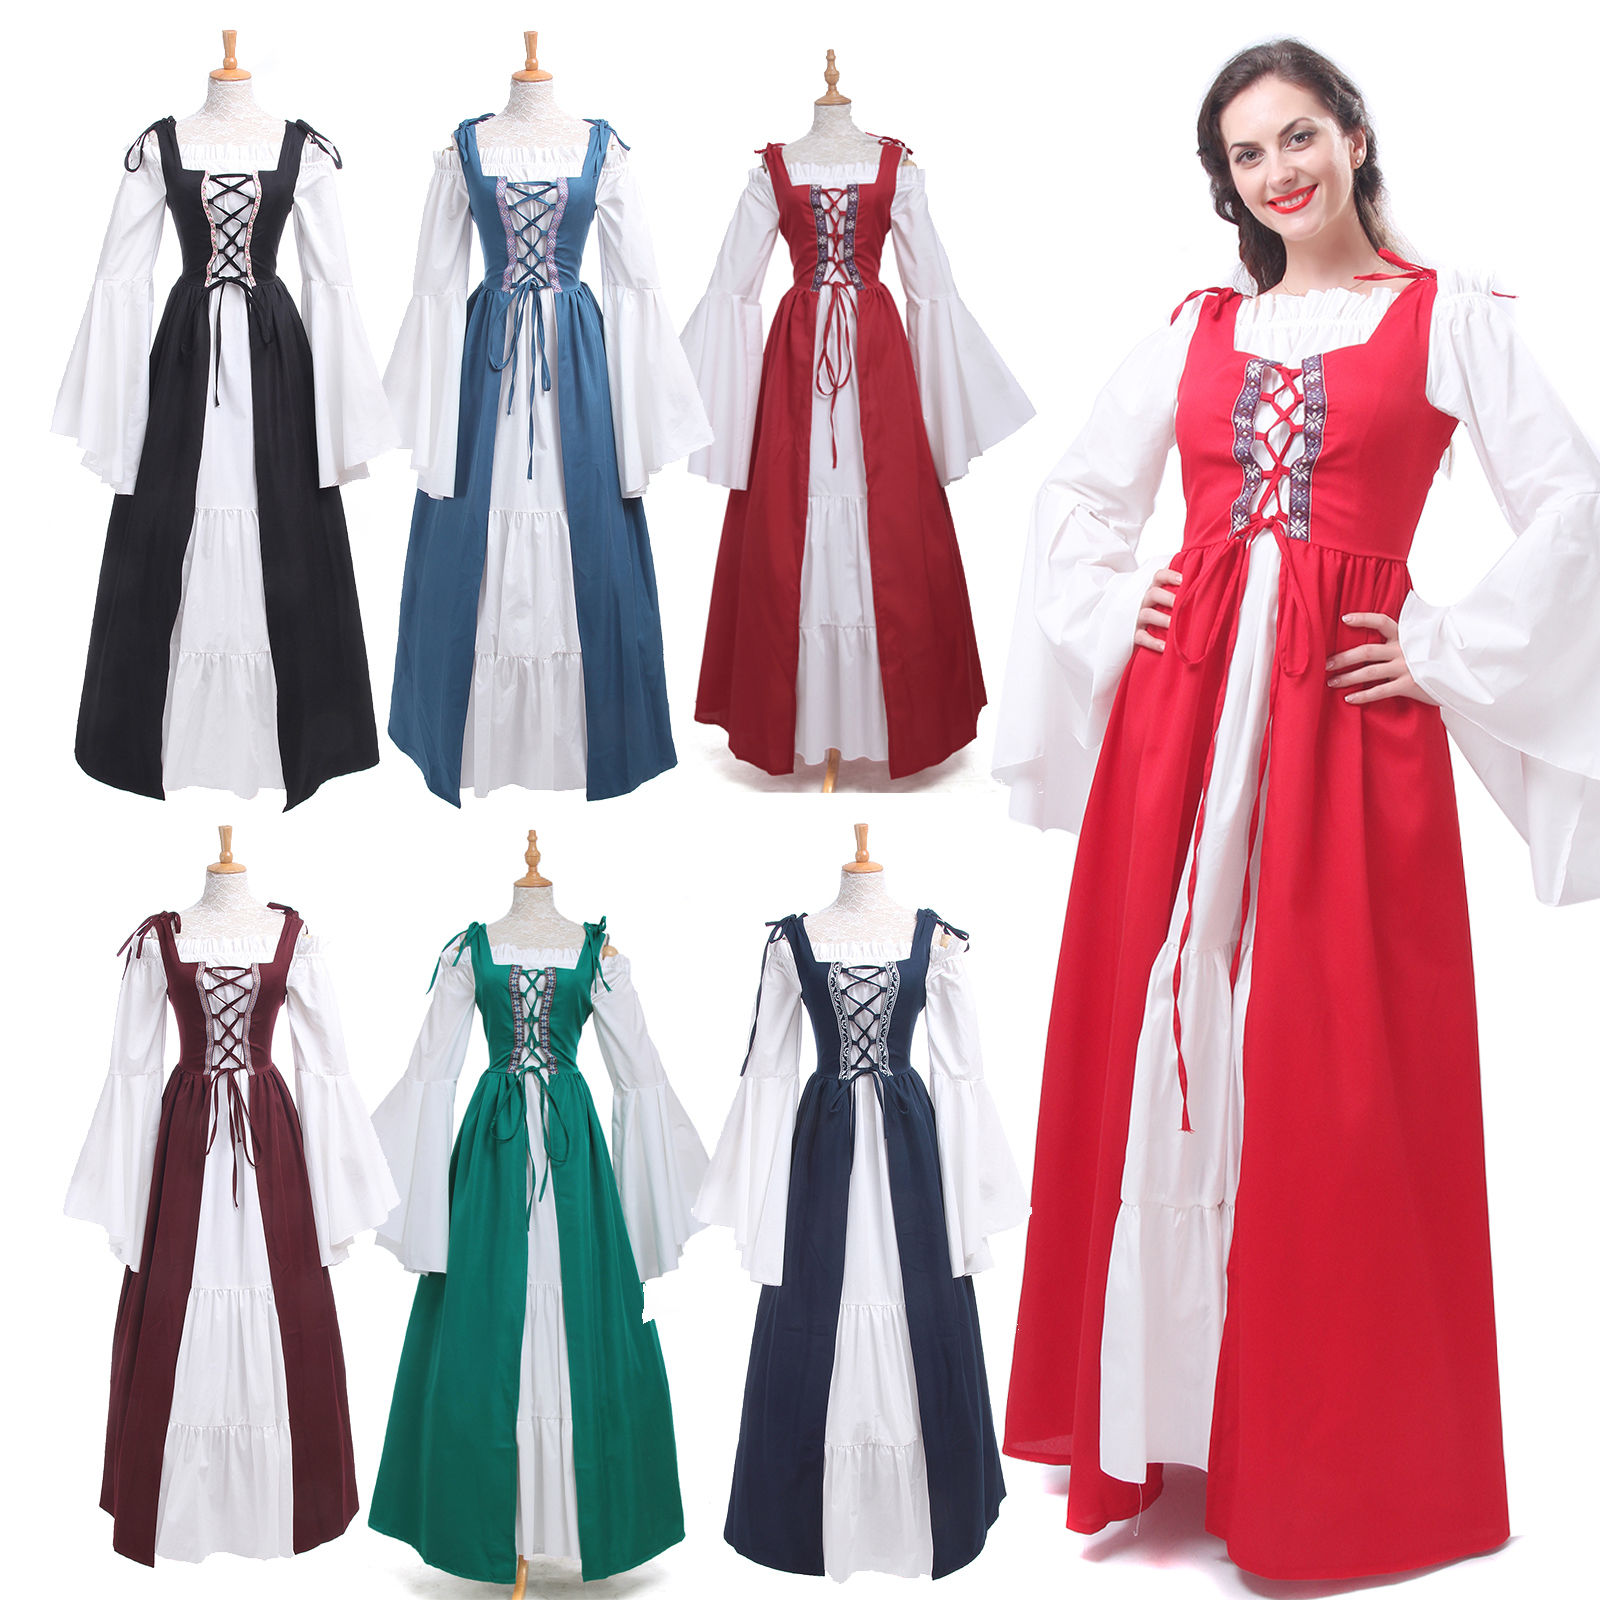 Plus Size Vintage Dress Women Renaissance Medieval Gown Wench Chemise  Cosplay Costume Dress Qawc-3504 - Buy Renaissance Dress Costume,Vintage  Dress ...